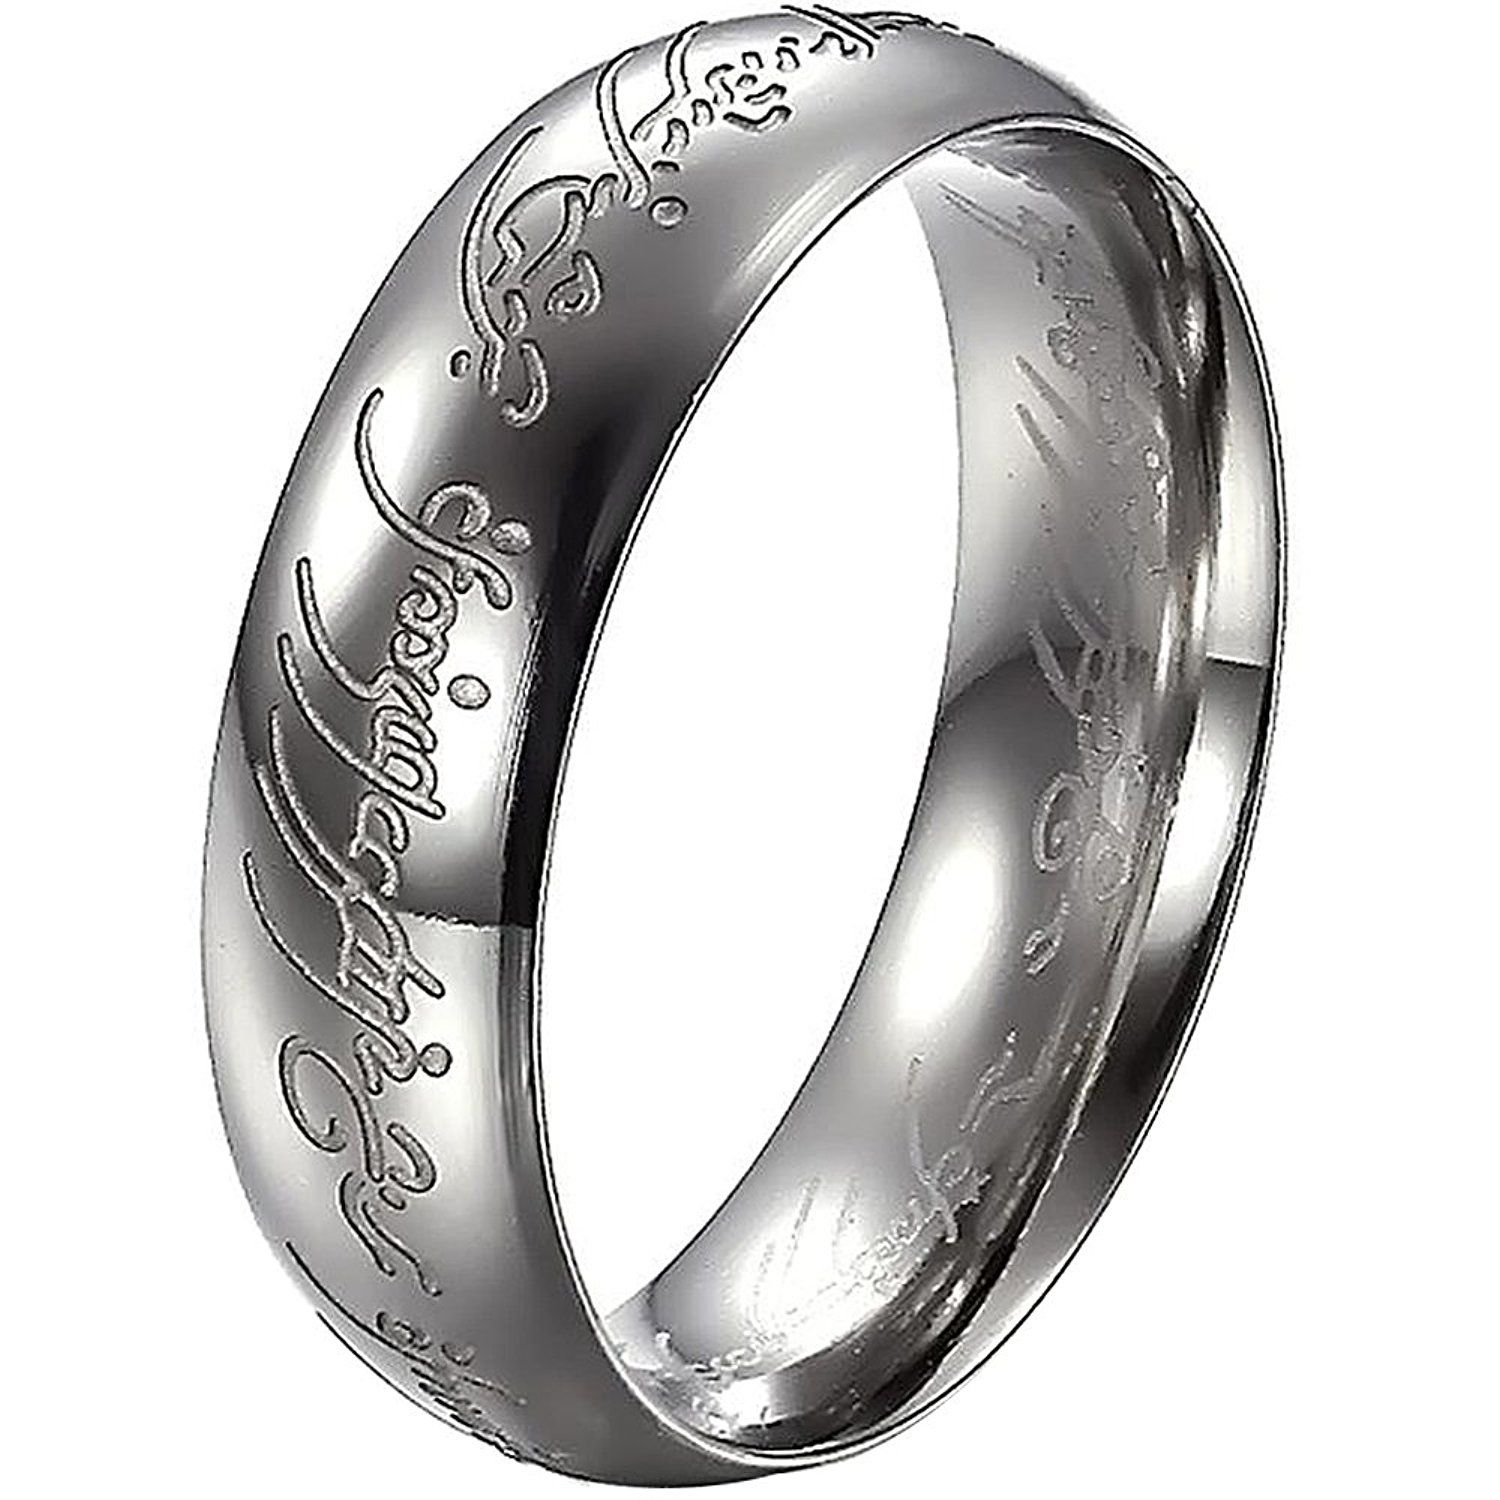 Bohg Jewelry Mens Womens Wide 6mm Lord Of The Rings Stainless Steel Love Engagement Wedding Band